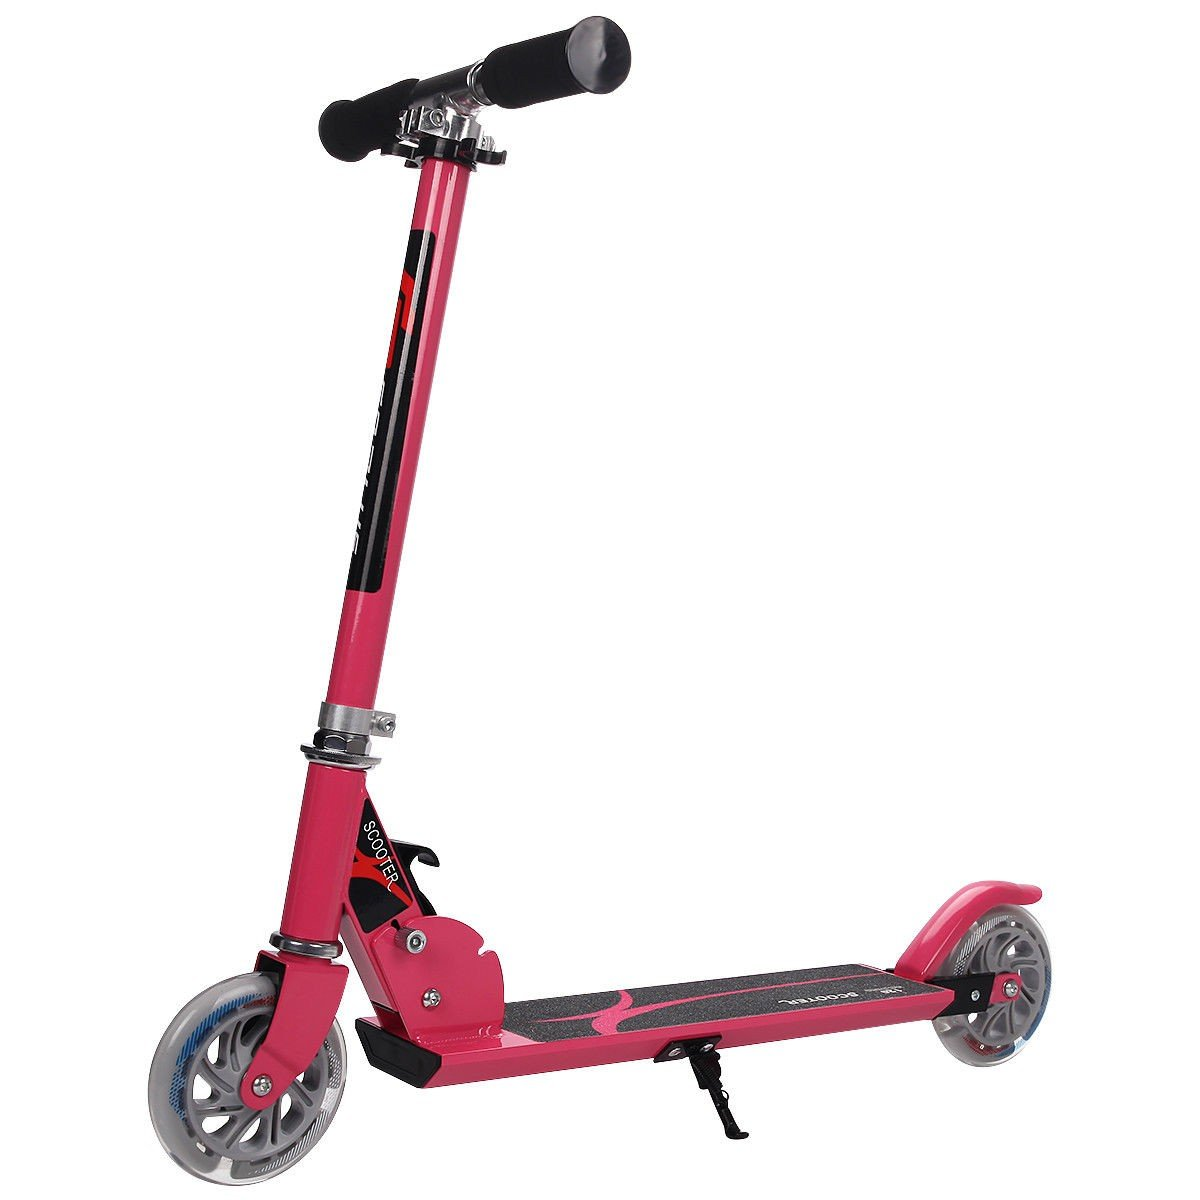 MD Group Kids Kick Scooter Folding Adjustable Pink Aluminum & PU Wheels Christmas Gift